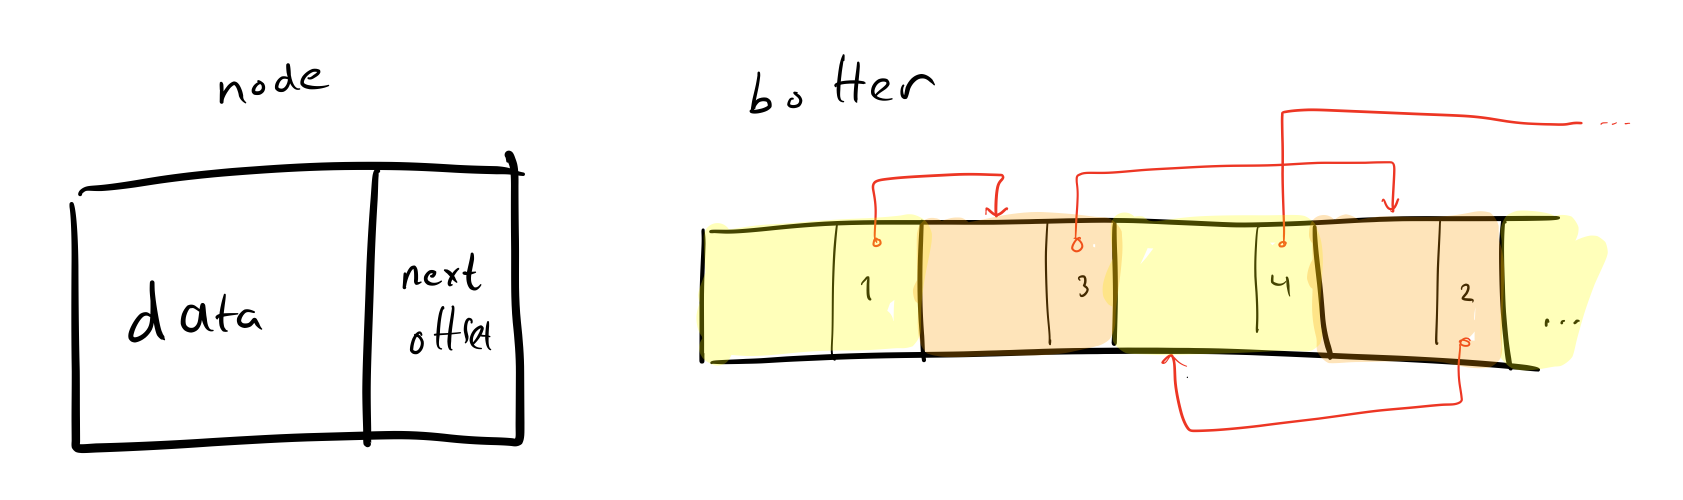 Singly linked list stored in an array.